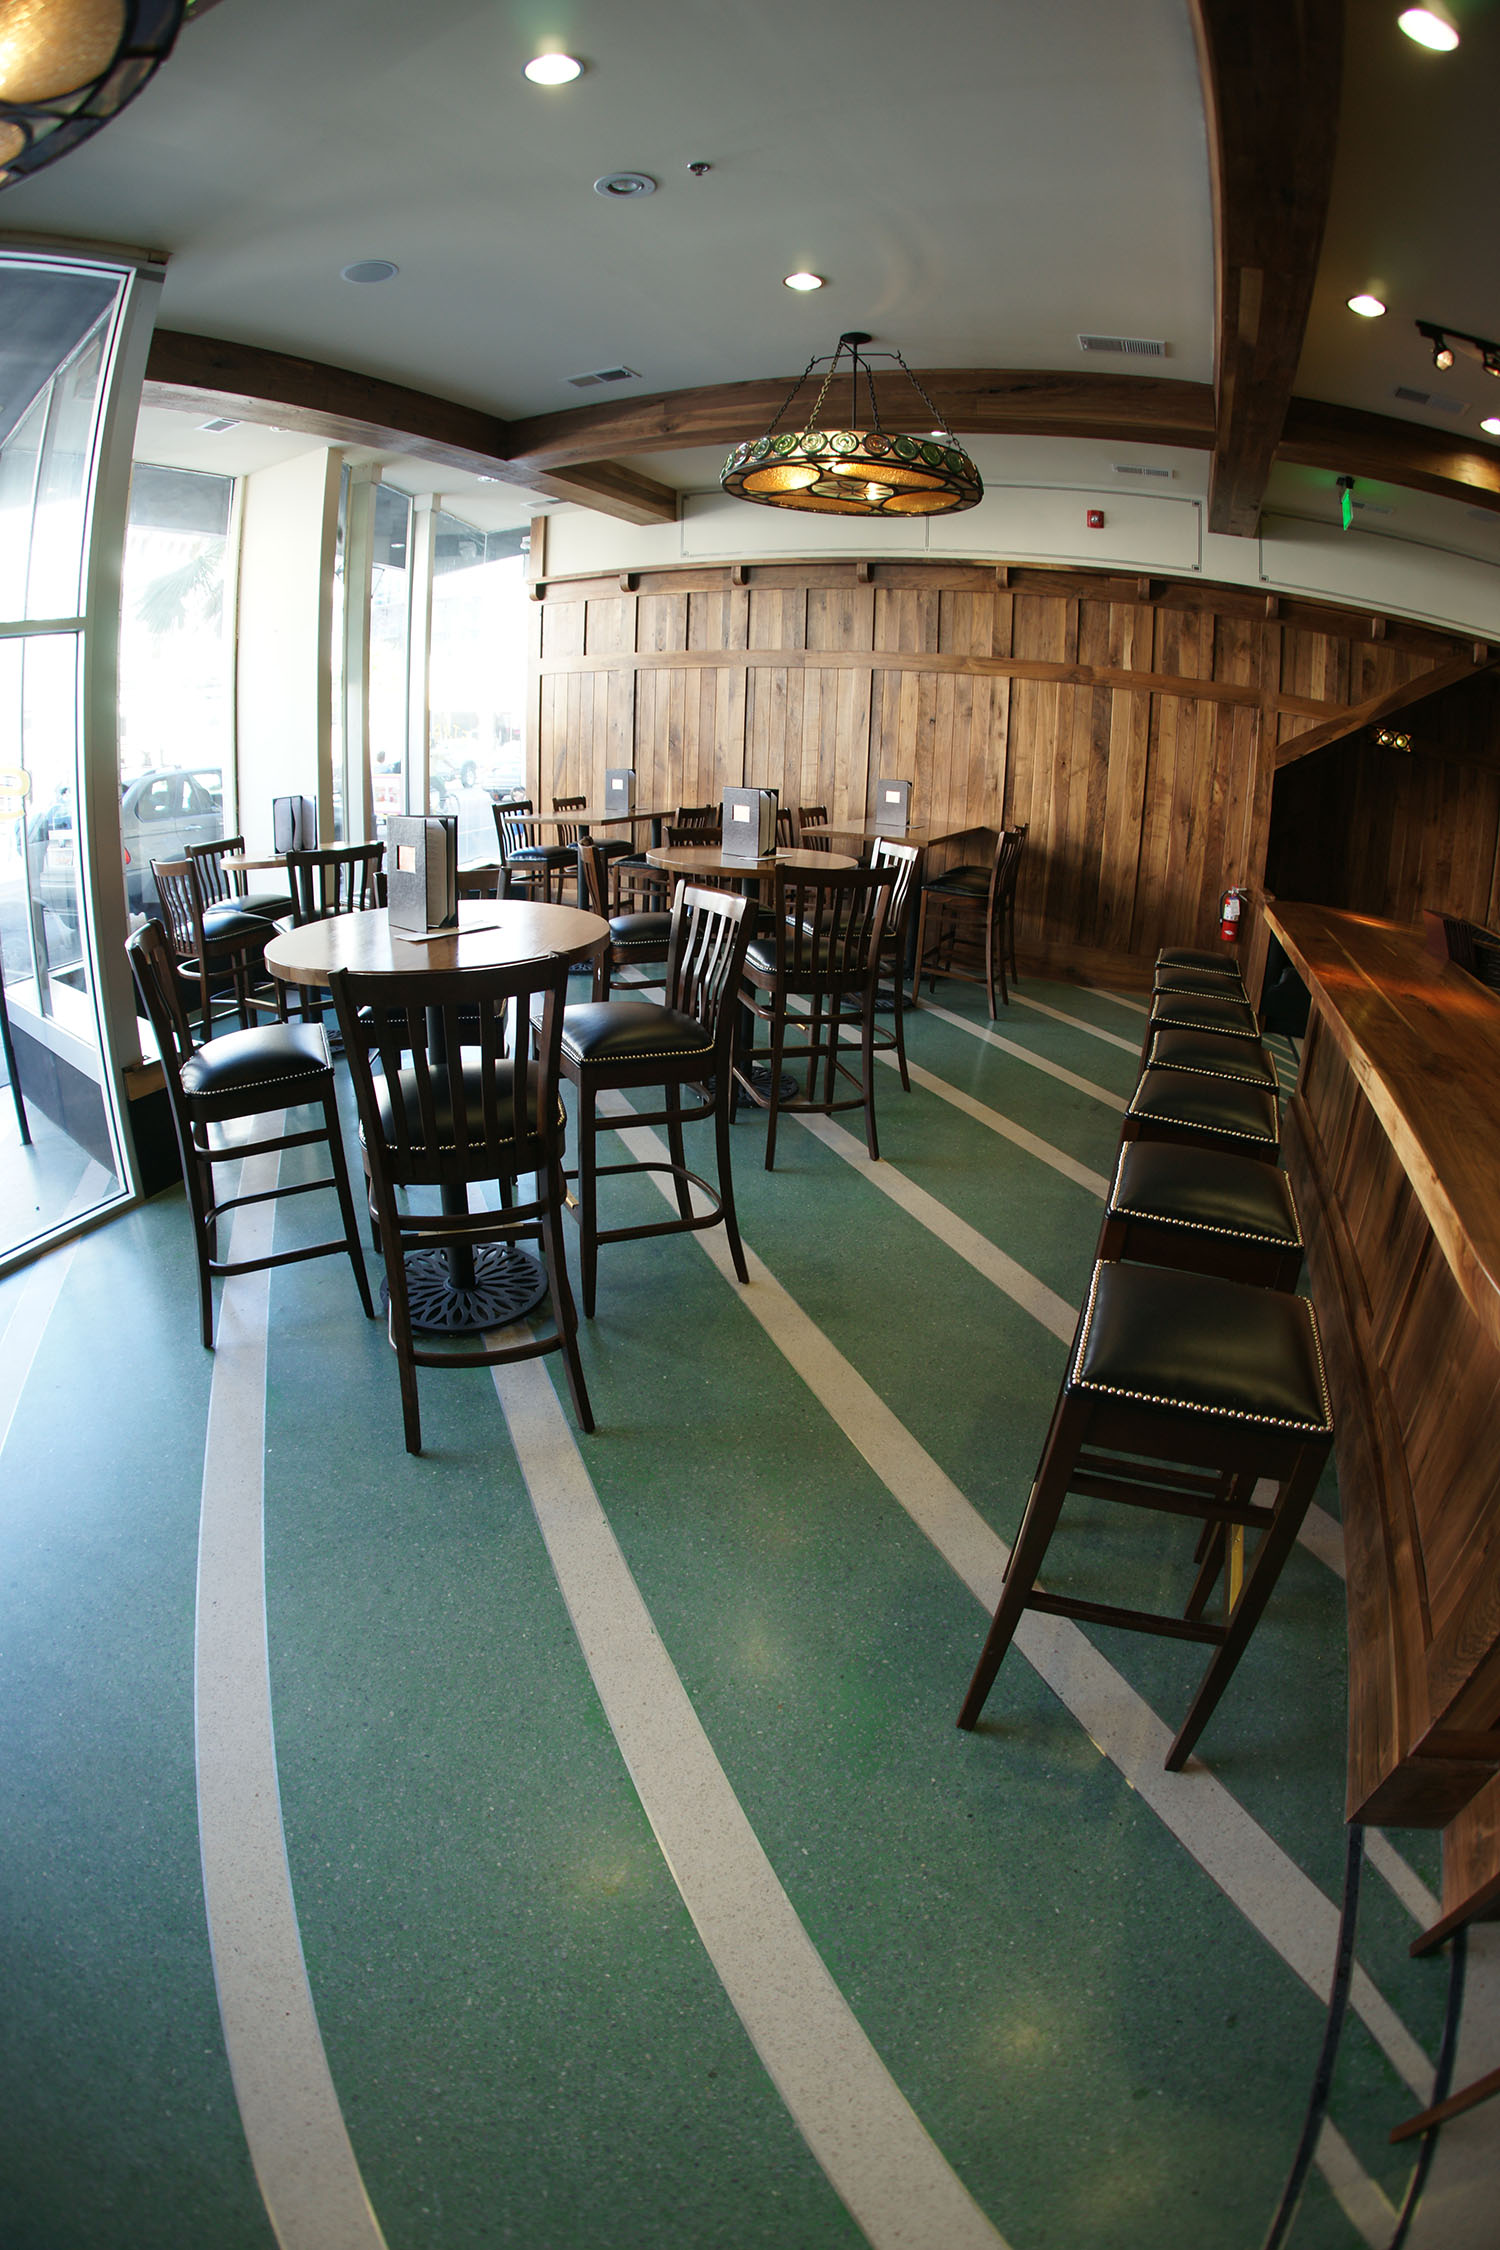 Green Terrazzo Floors at Stars Bar & Restaurant